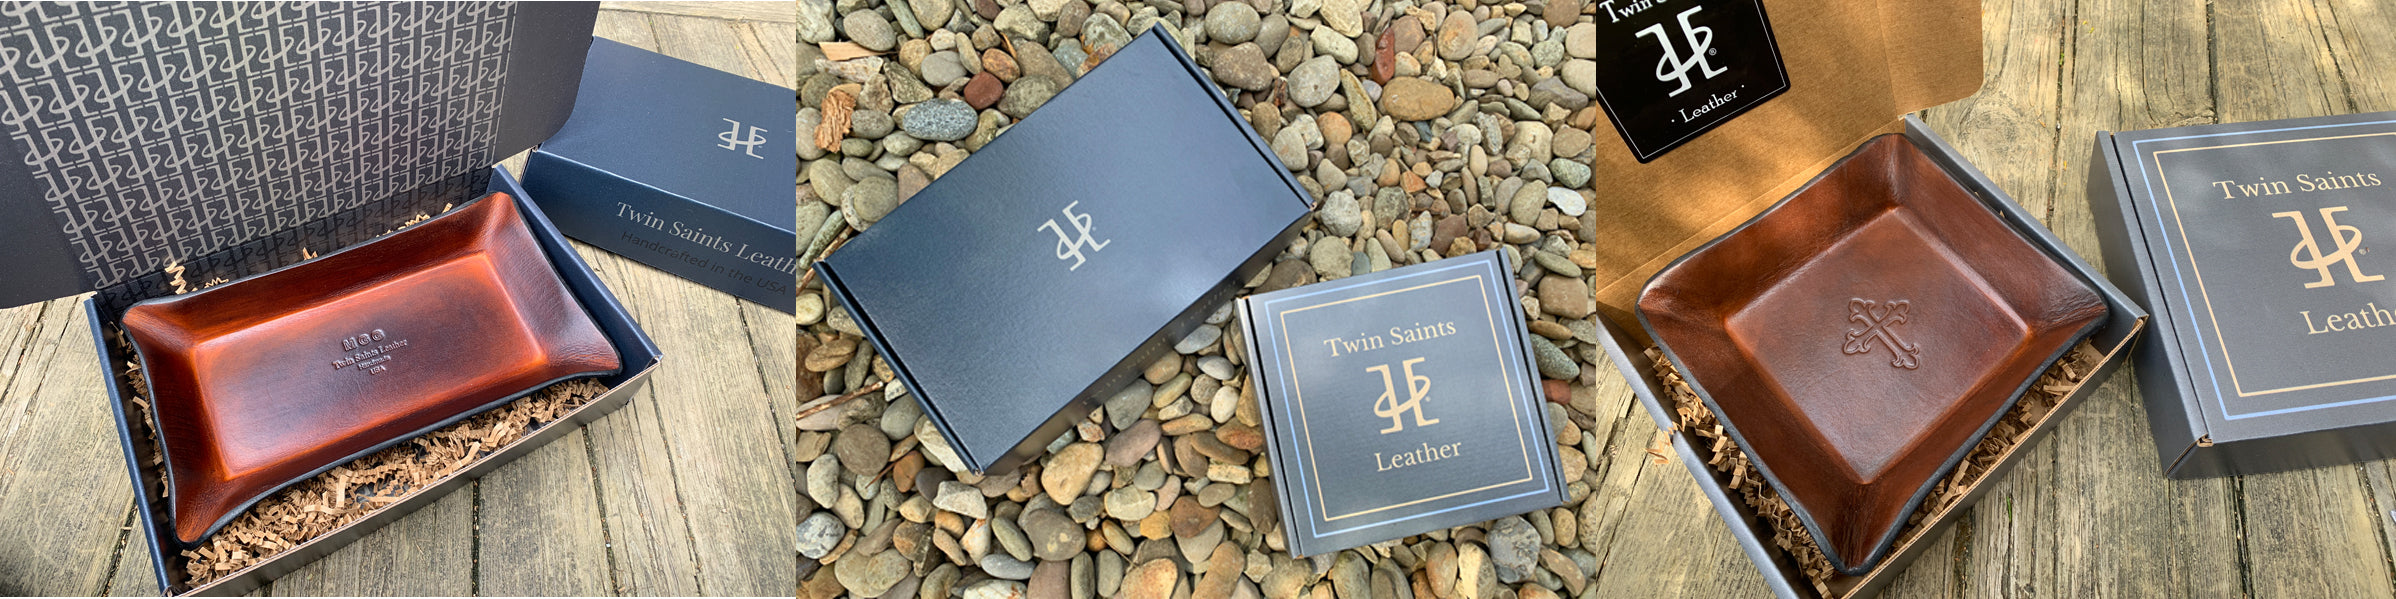 Gift Boxes. Twin Saints Leather